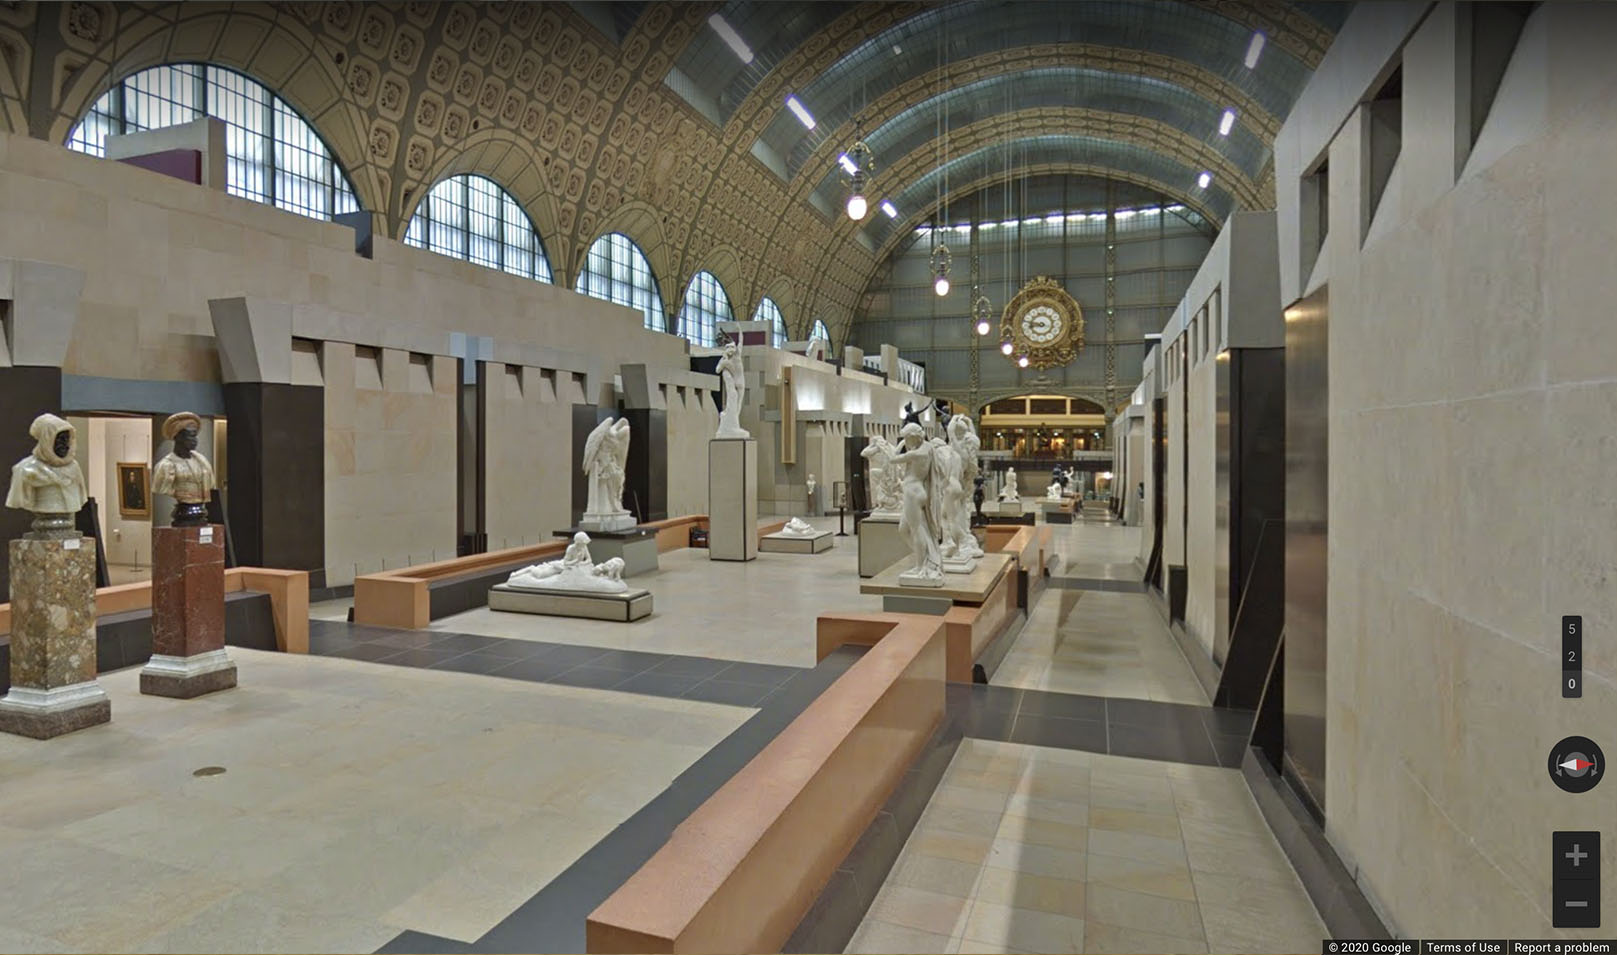 Large room with rounded ceiling and benches, on Google Arts & Culture